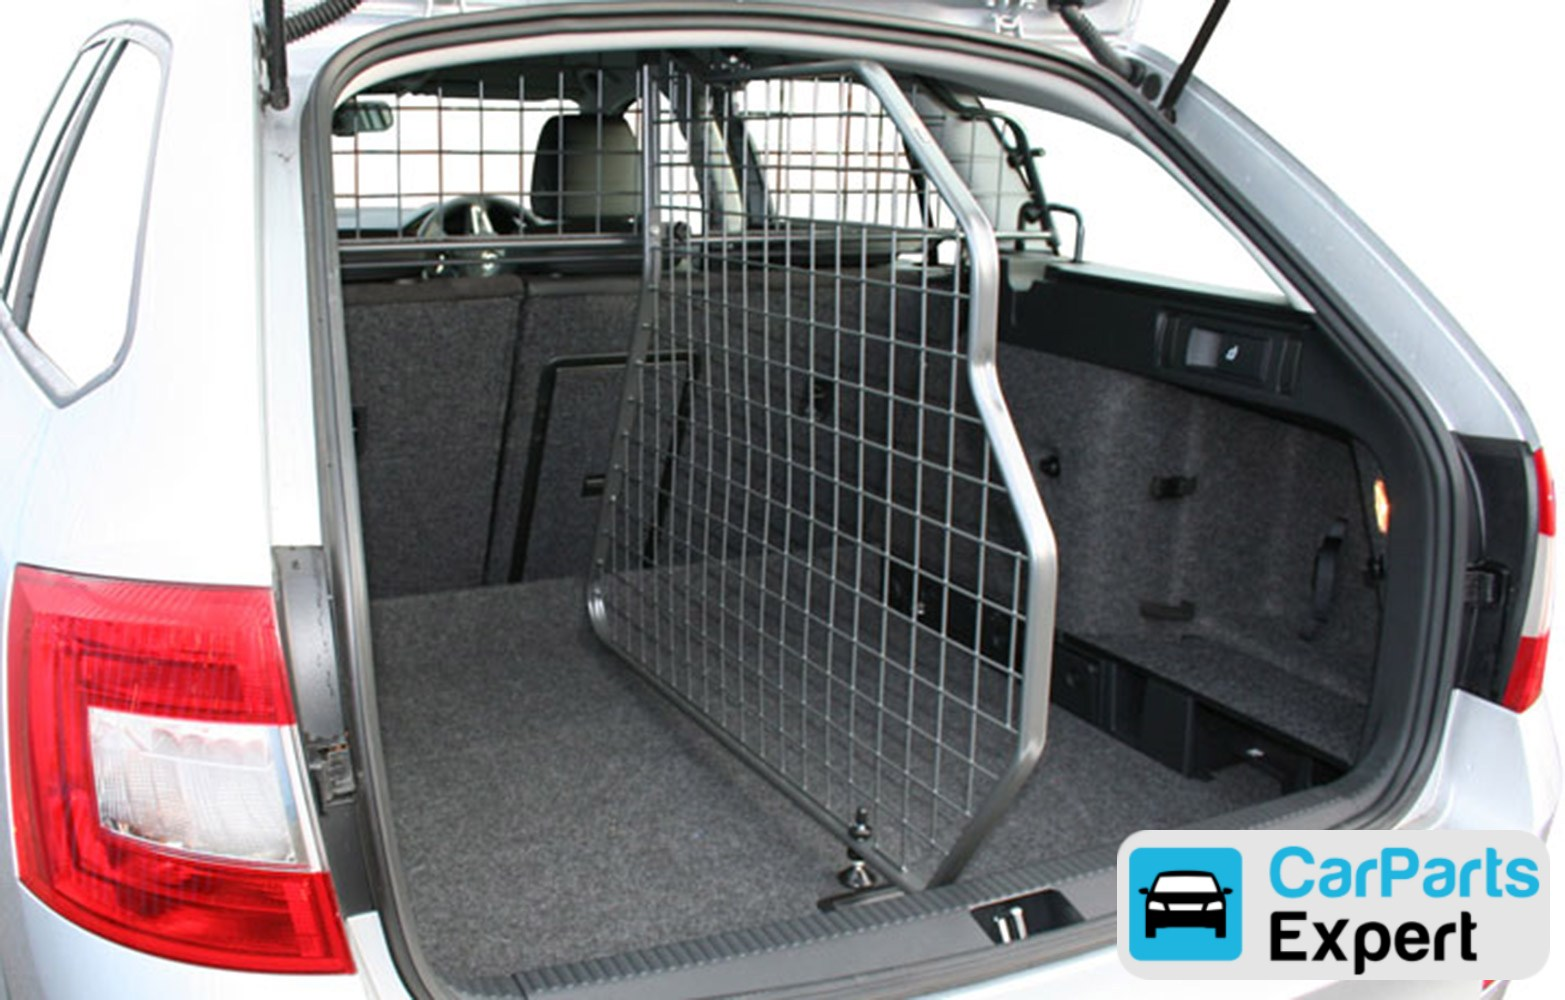 octavia iii combi 5e 2013 present skoda octavia iii combi 5e 2013 present cargo divider. Black Bedroom Furniture Sets. Home Design Ideas